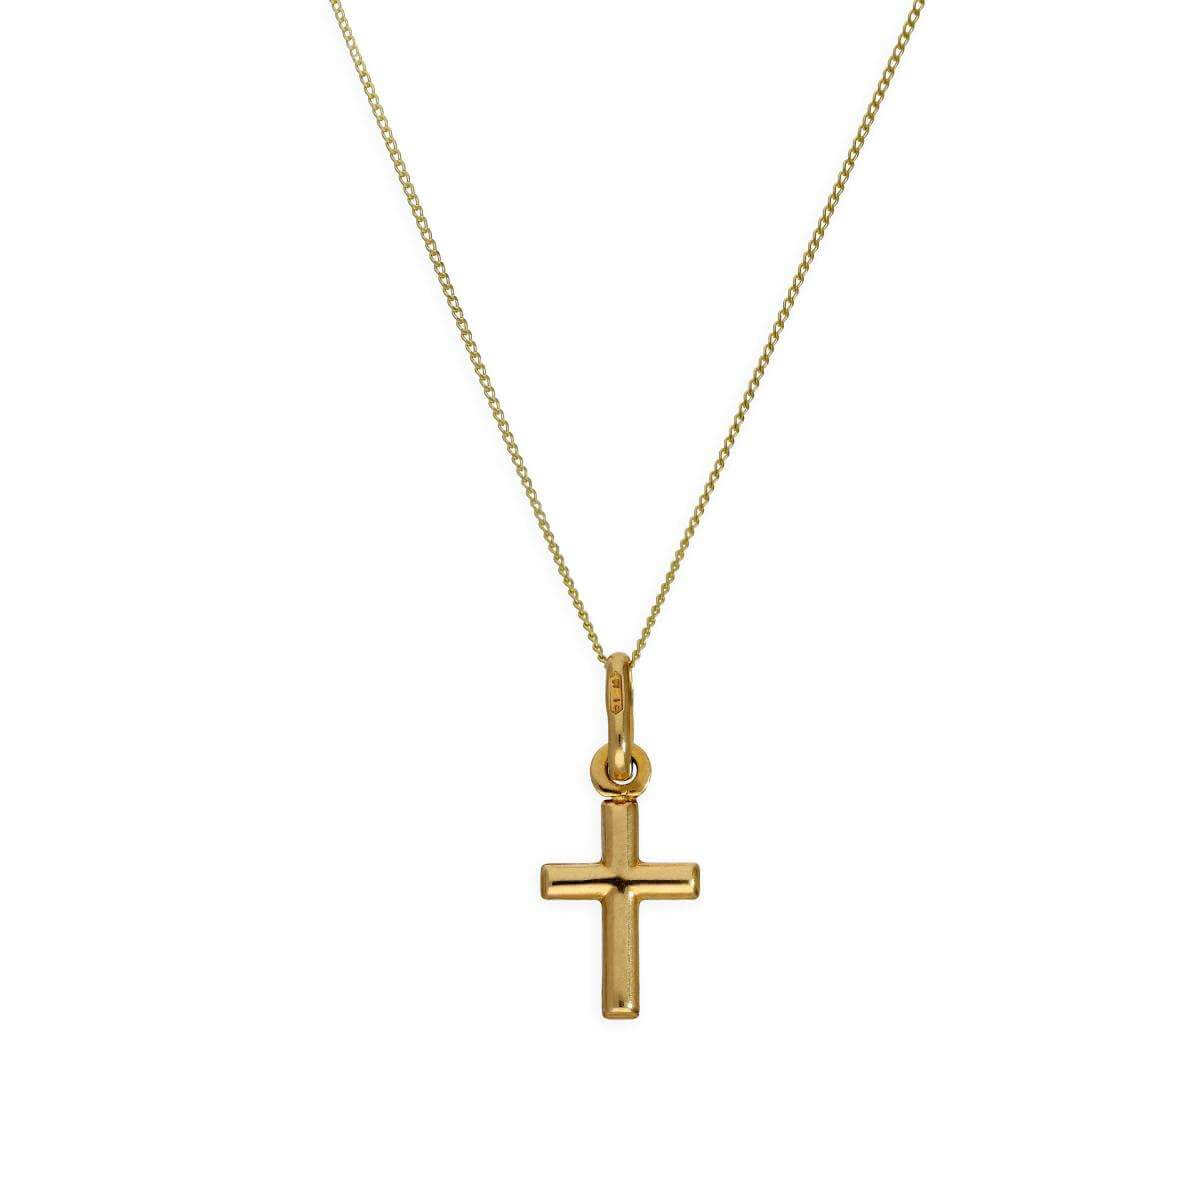 9ct Gold Small 3D Cross Pendant Necklace 16 - 20 Inches